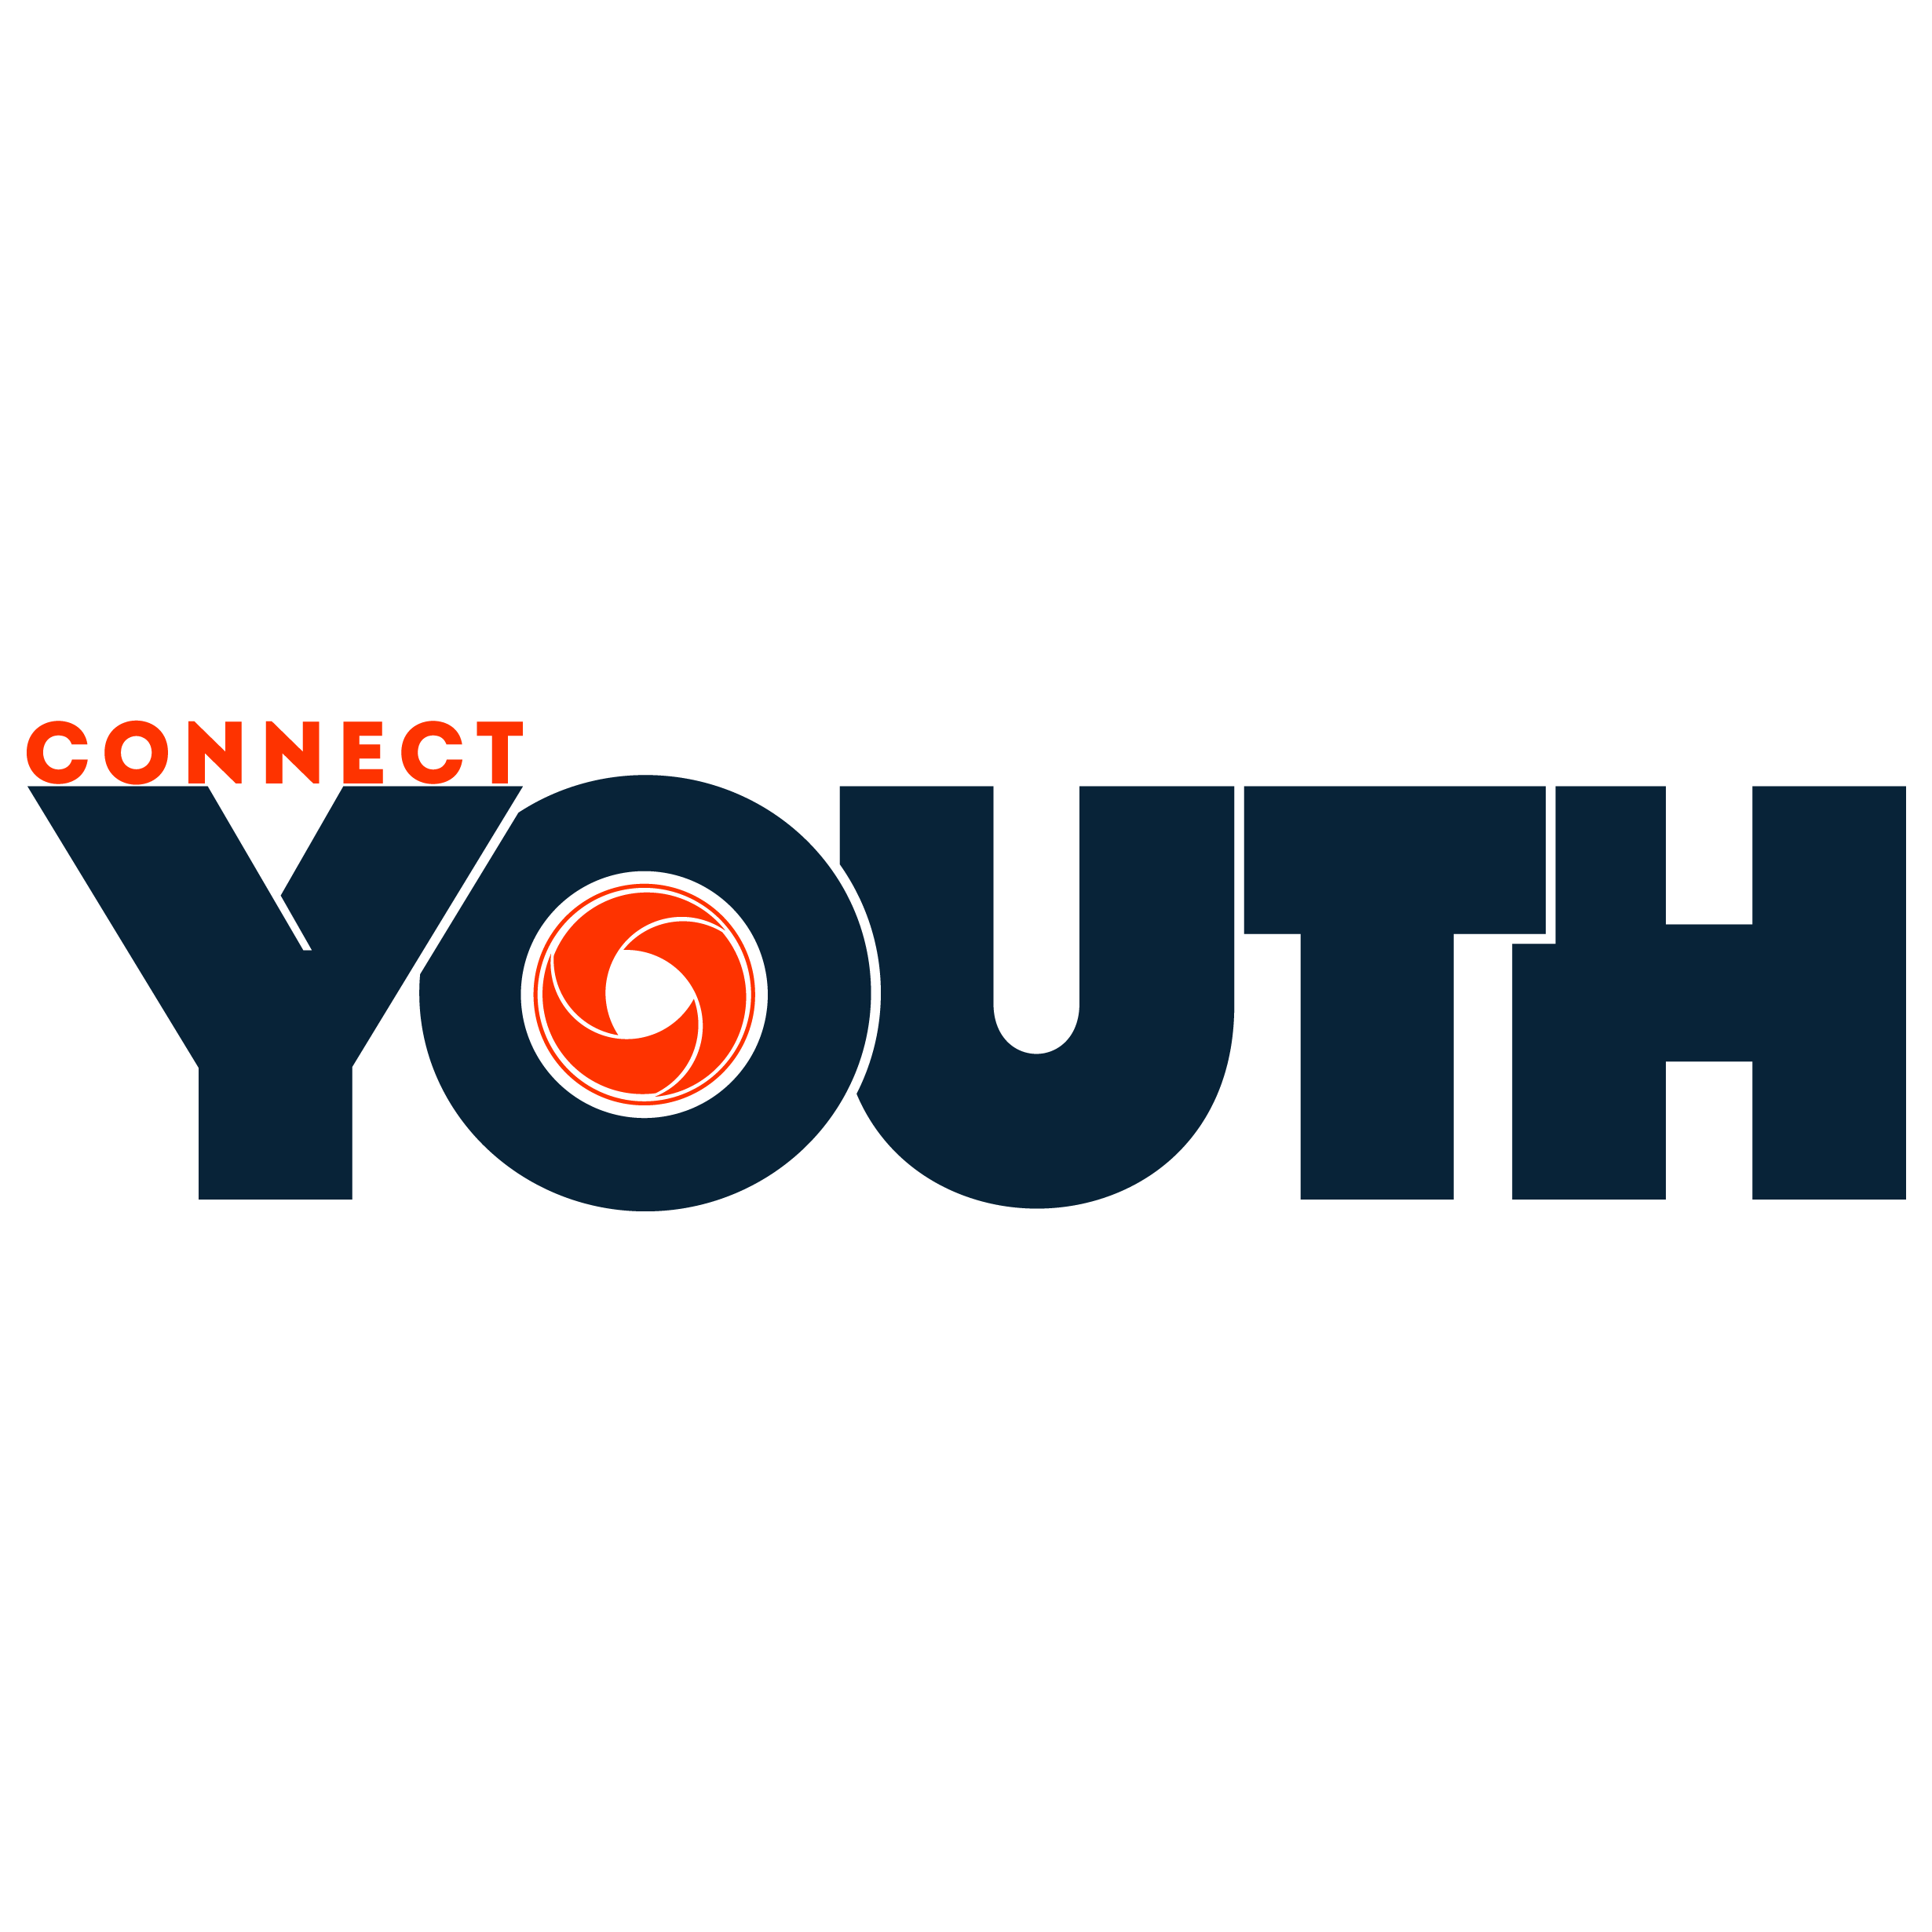 Connect Youth - Whether you find yourself in Middle School or High School we would love for you to come on out! Enjoy some friends, have deep encounters with God, and make some lifelong memories!Connect Youth meets at our Cherry Hill campus on Friday Nights from 7:00 PM - 8:00 PM in our Youth Room, located off of the main corridor.